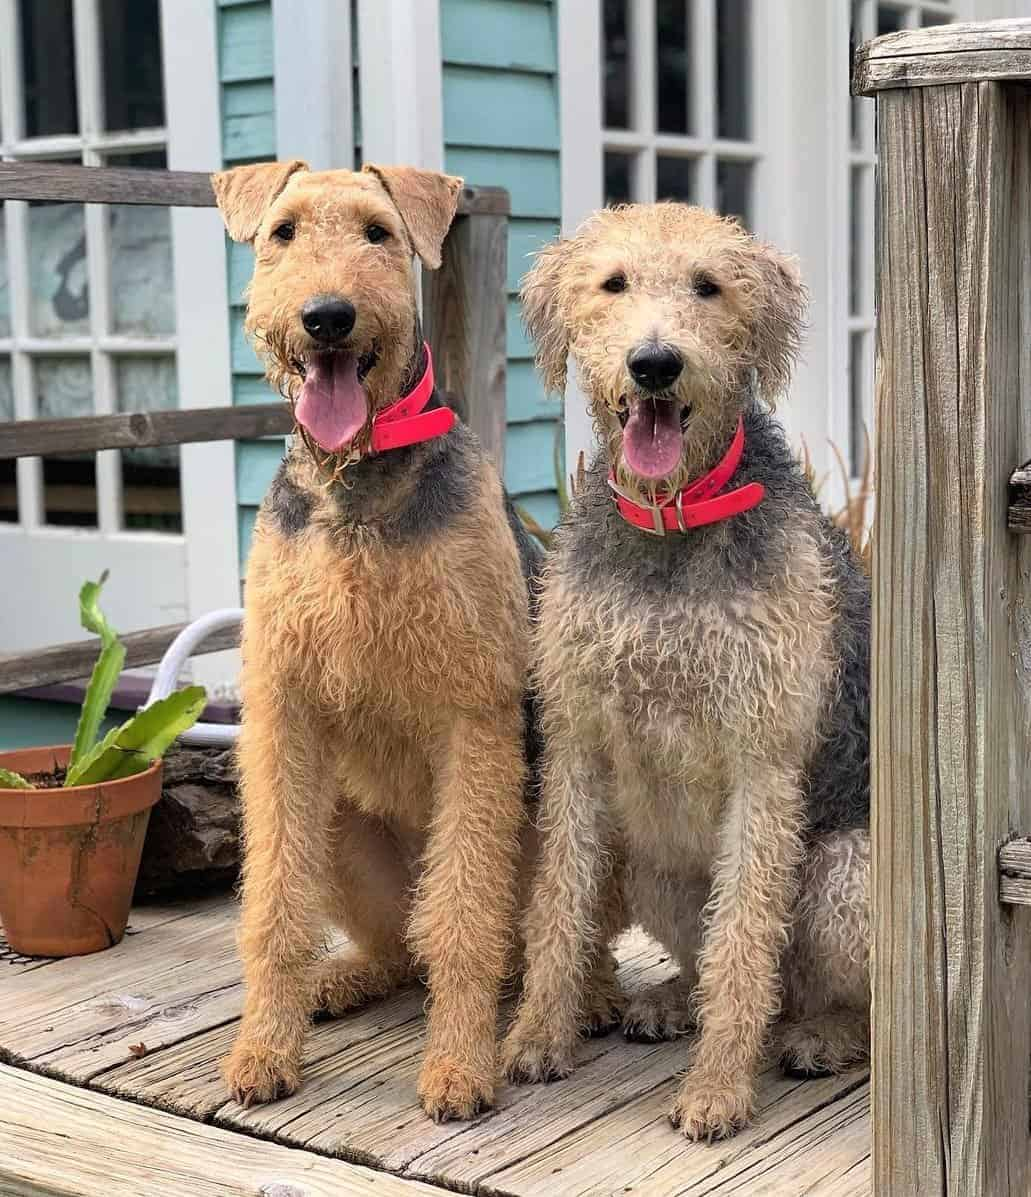 Airedoodle (Airedale Terrier and Poodle Mix)